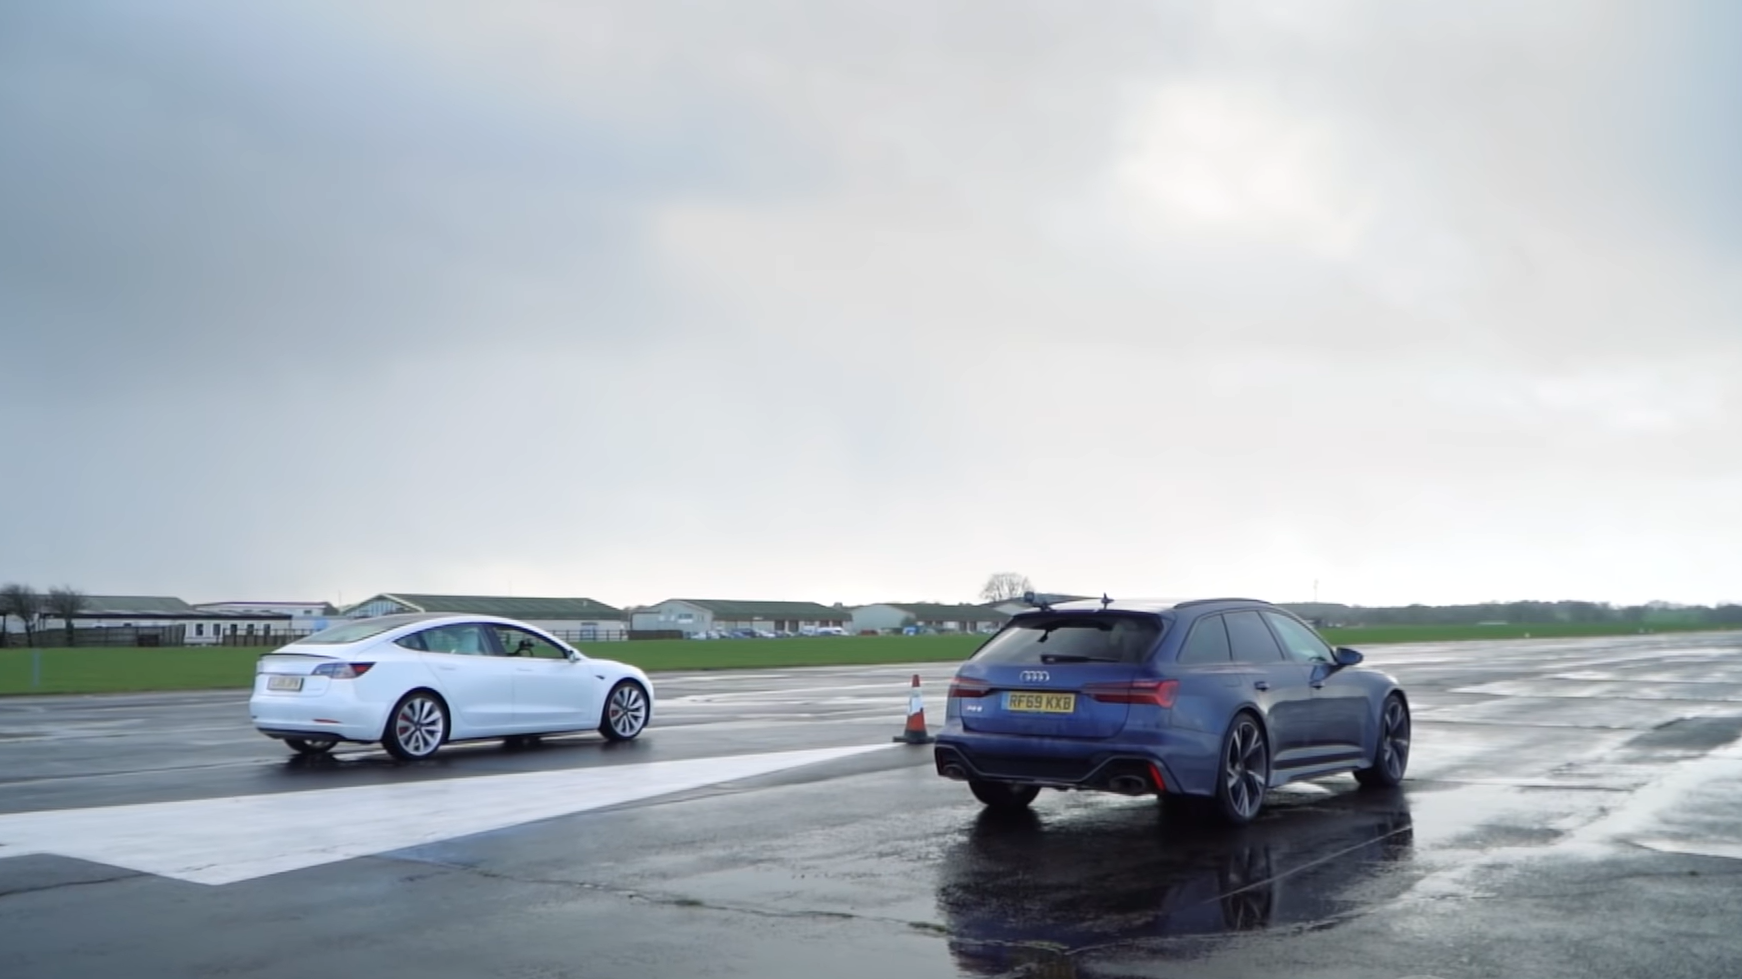 Audi RS6 Avant C8 vs Tesla Model 3 Performance dragrace 3 4 achter